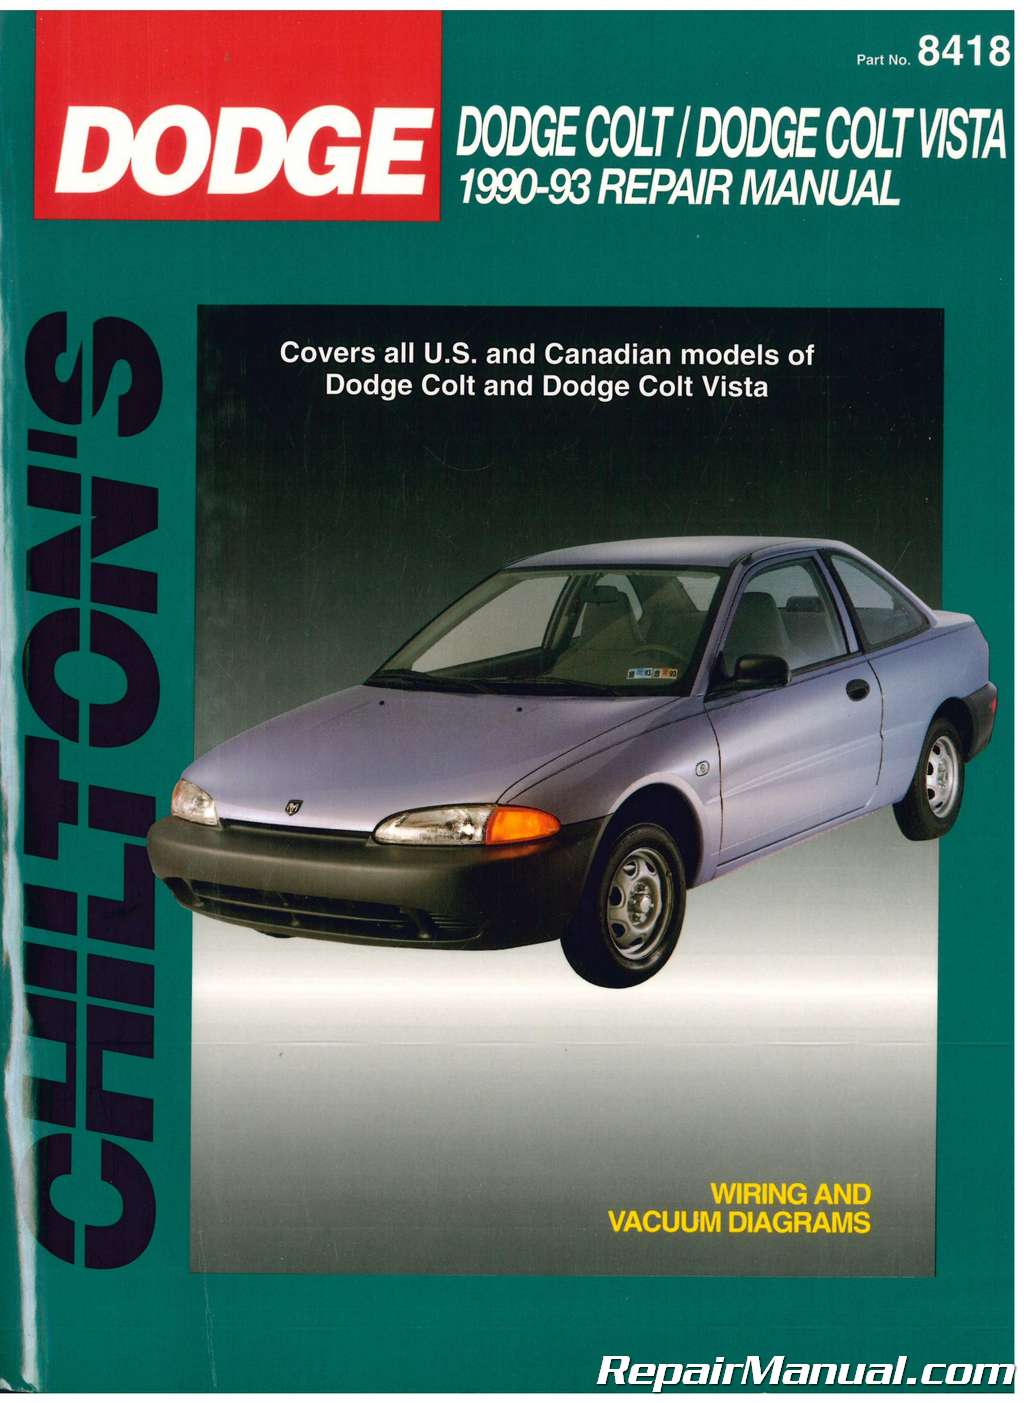 hight resolution of used chilton dodge colt dodge colt vista 1990 1993 repair manual 1990 dodge colt engine diagram